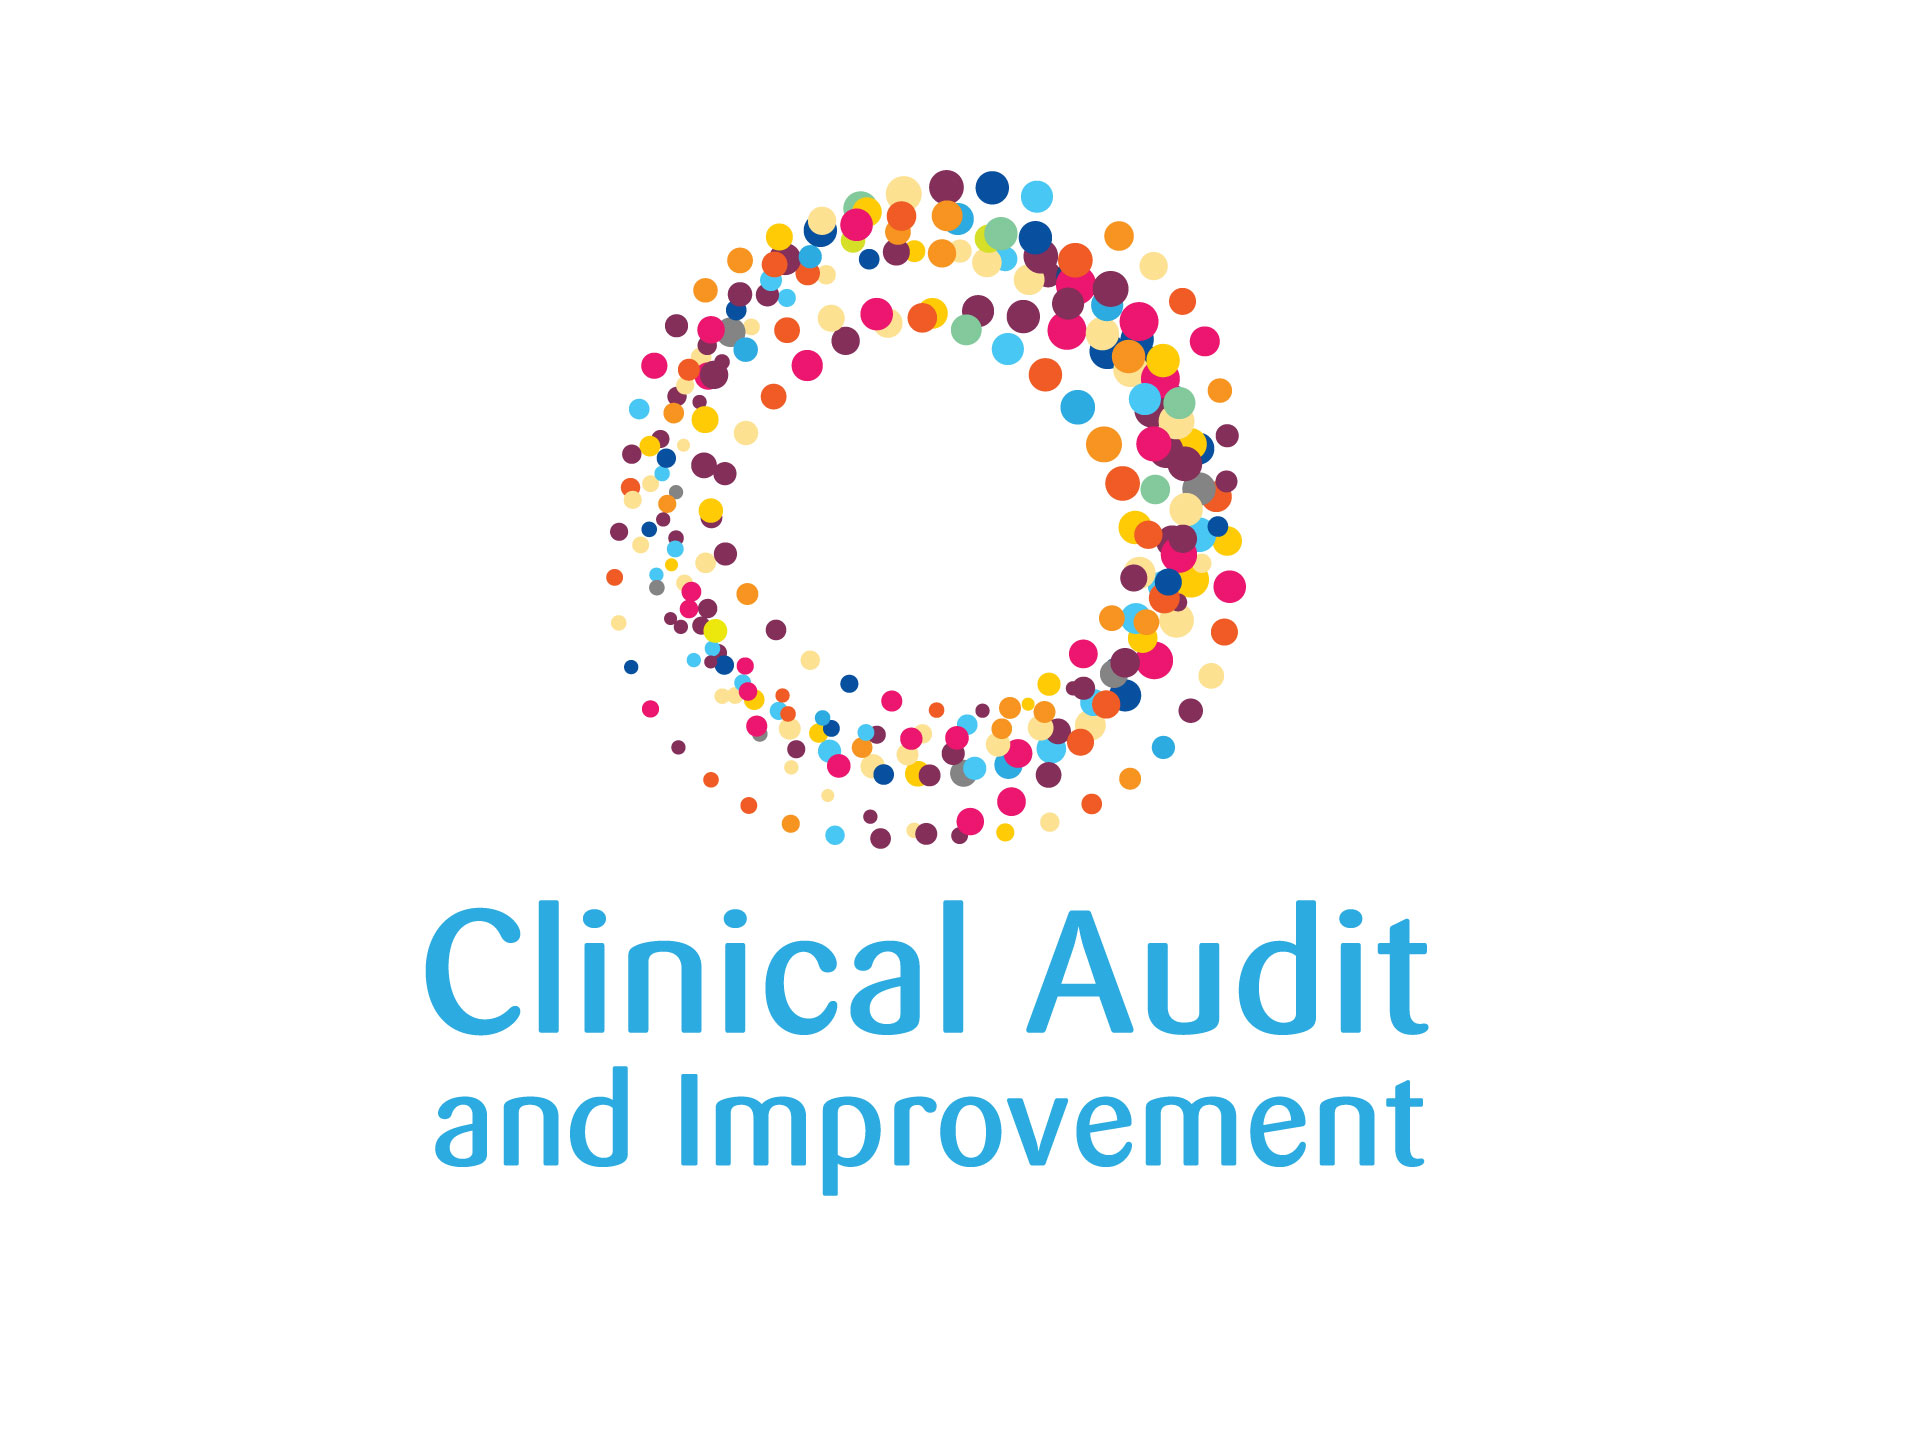 Healthcare Clinical audit logo